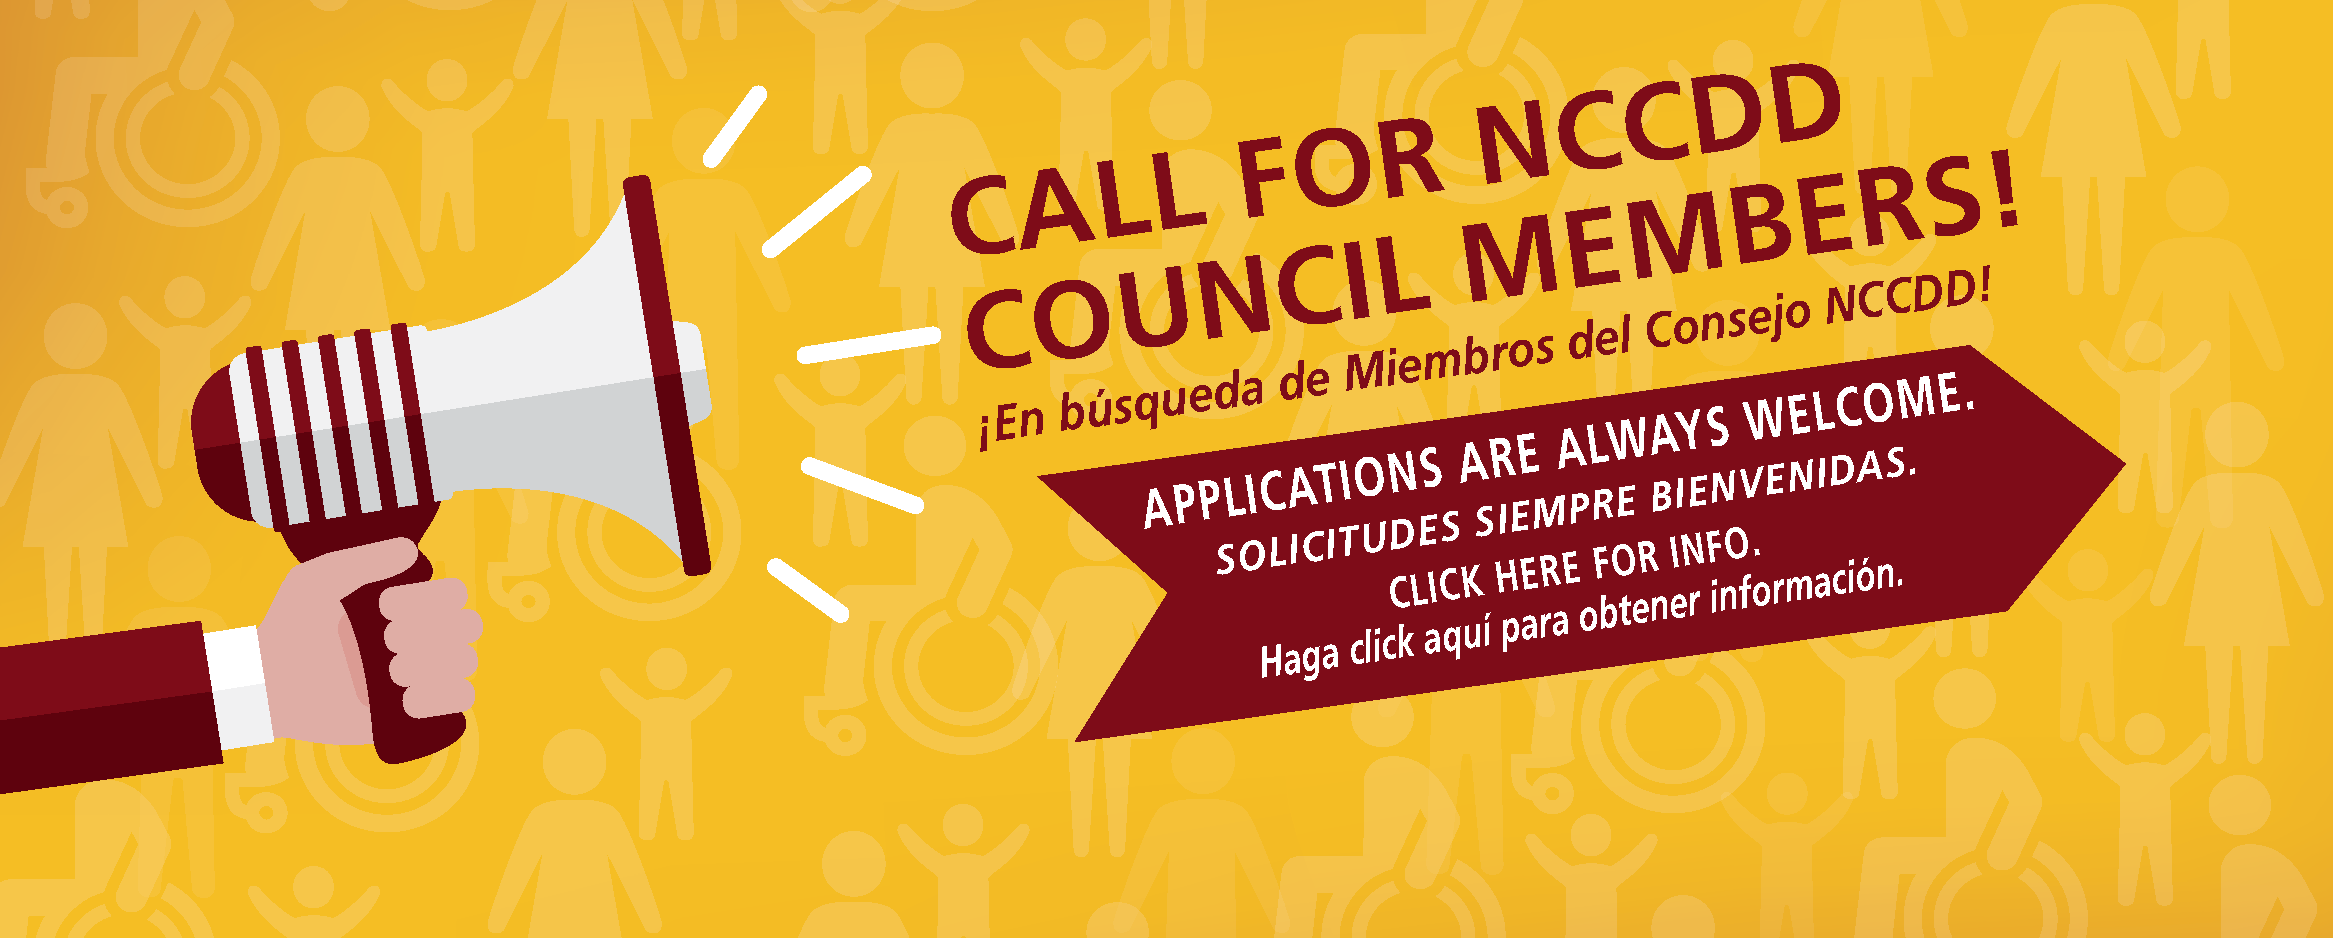 Call for NCCDD Council Members! Applications are always welcome. Click here for info.